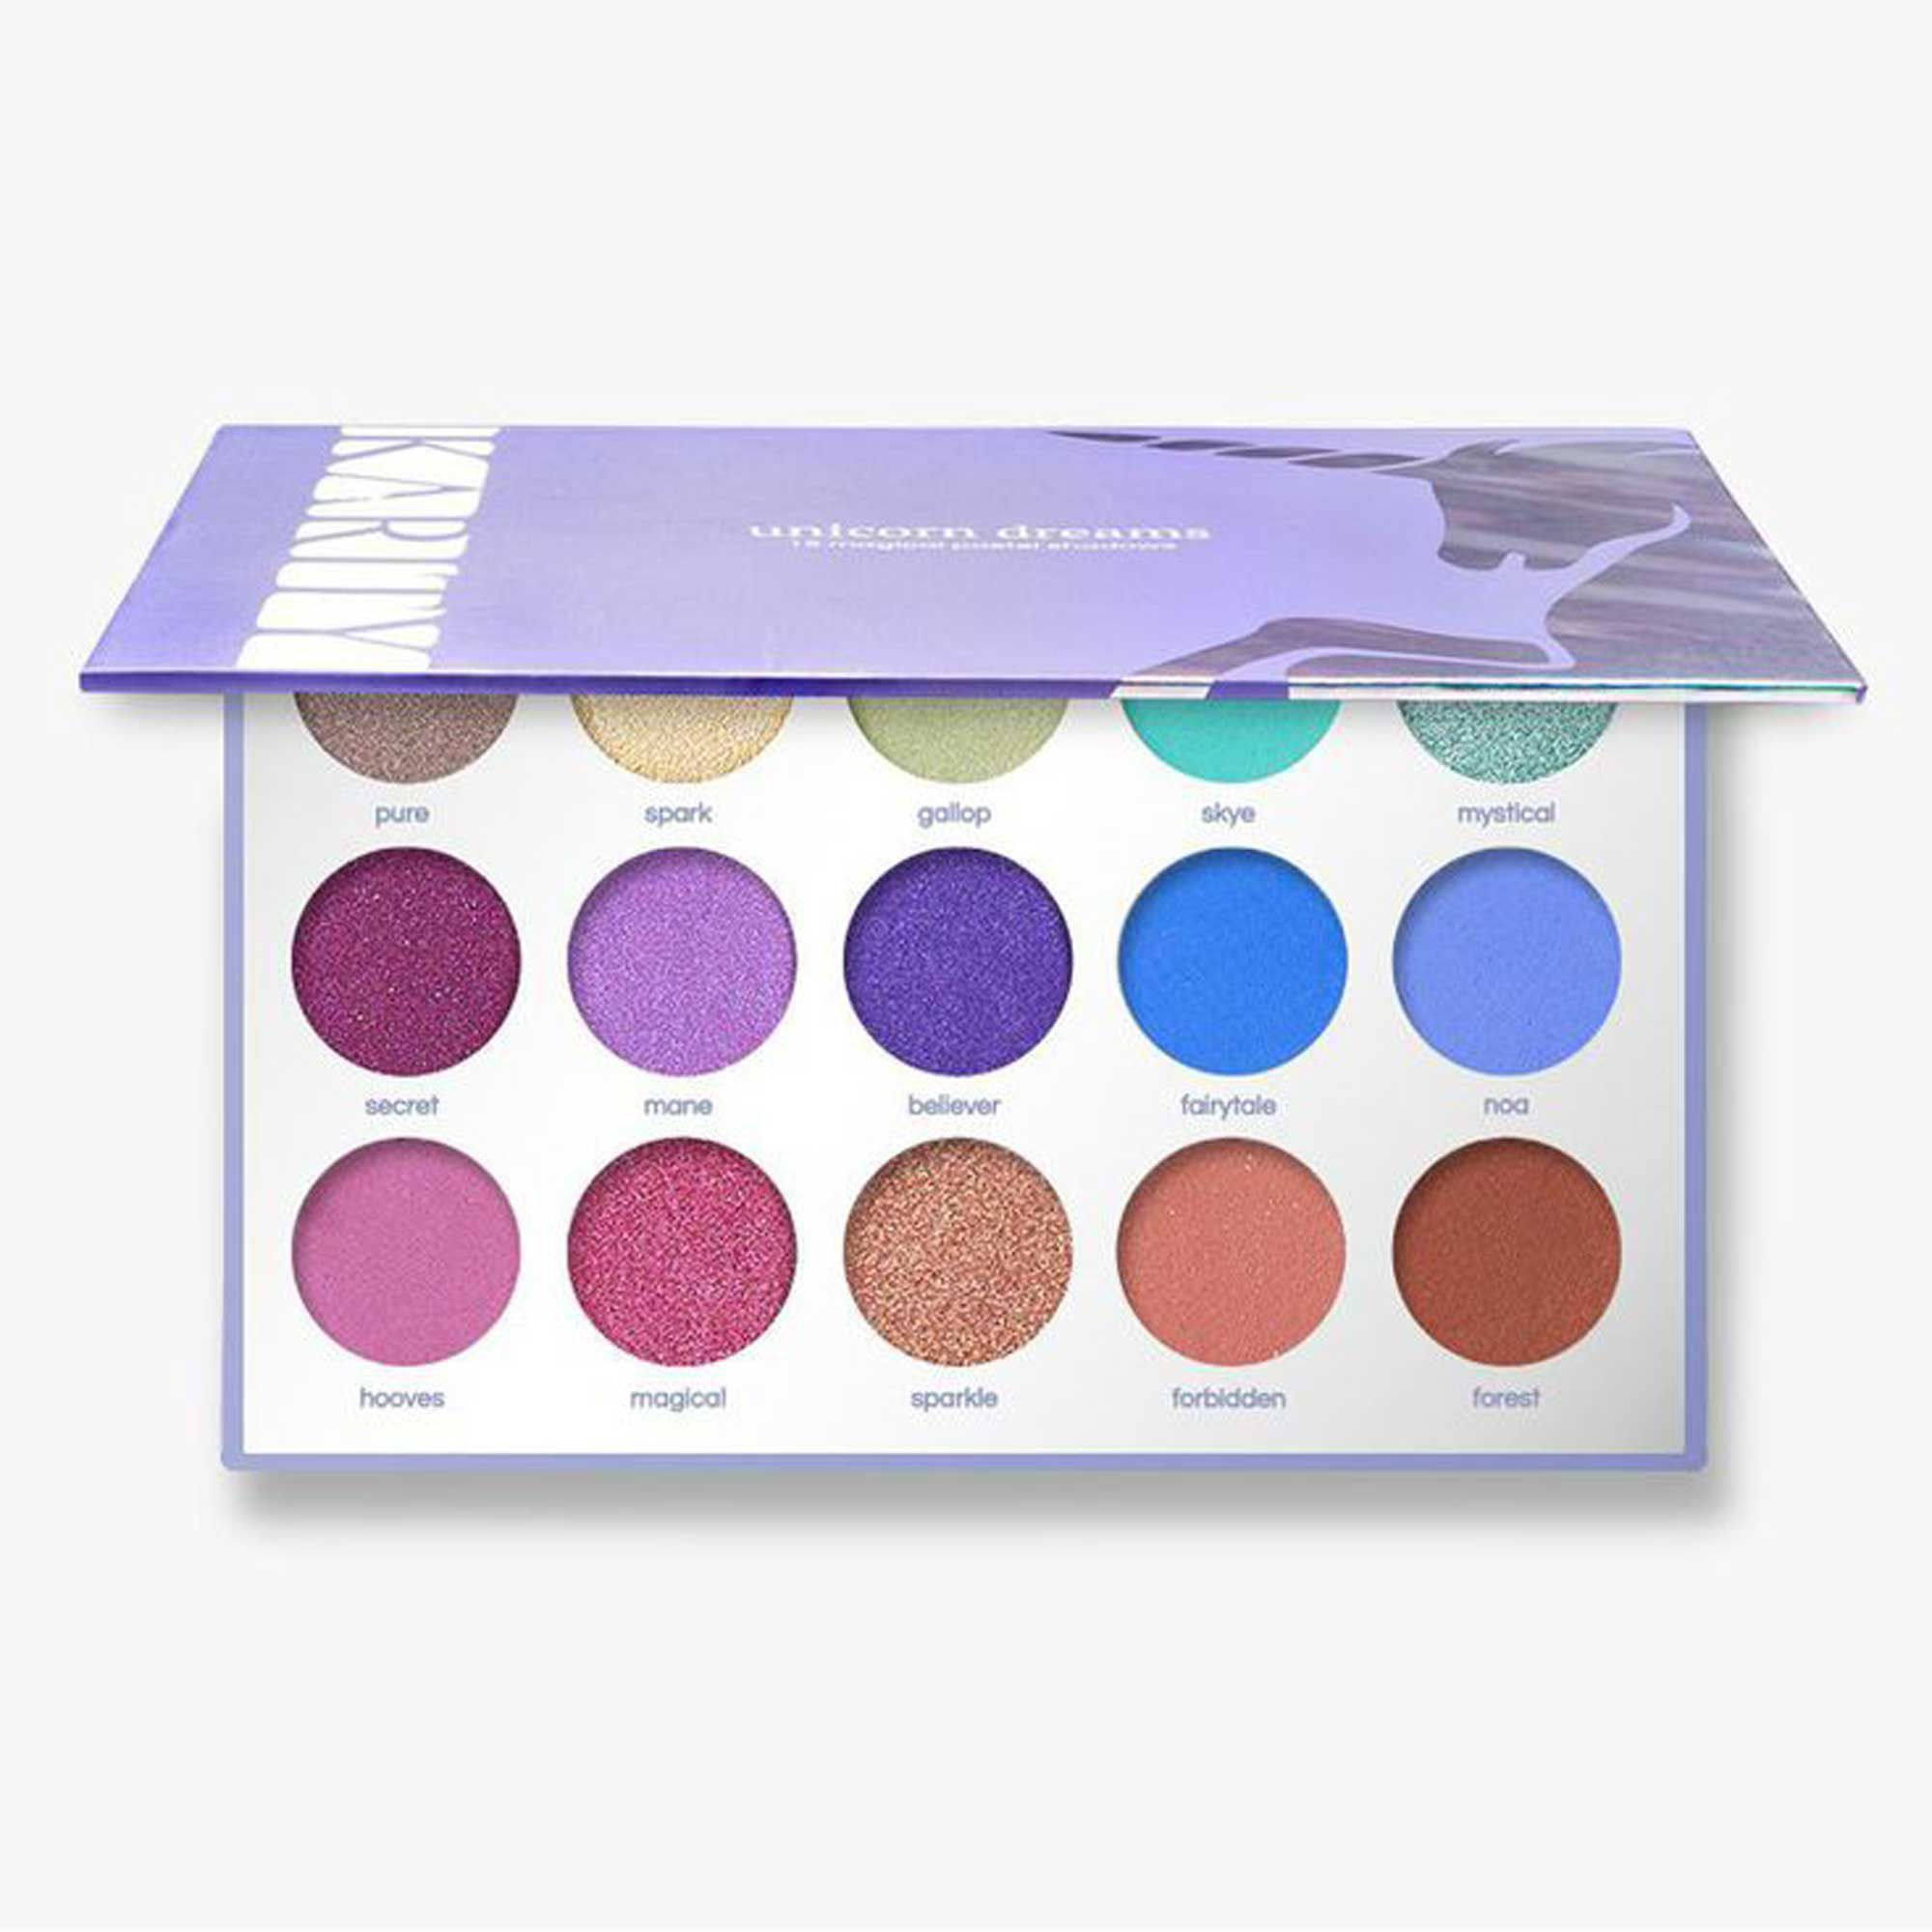 I Can't Get Enough of These Eyeshadow Palettes